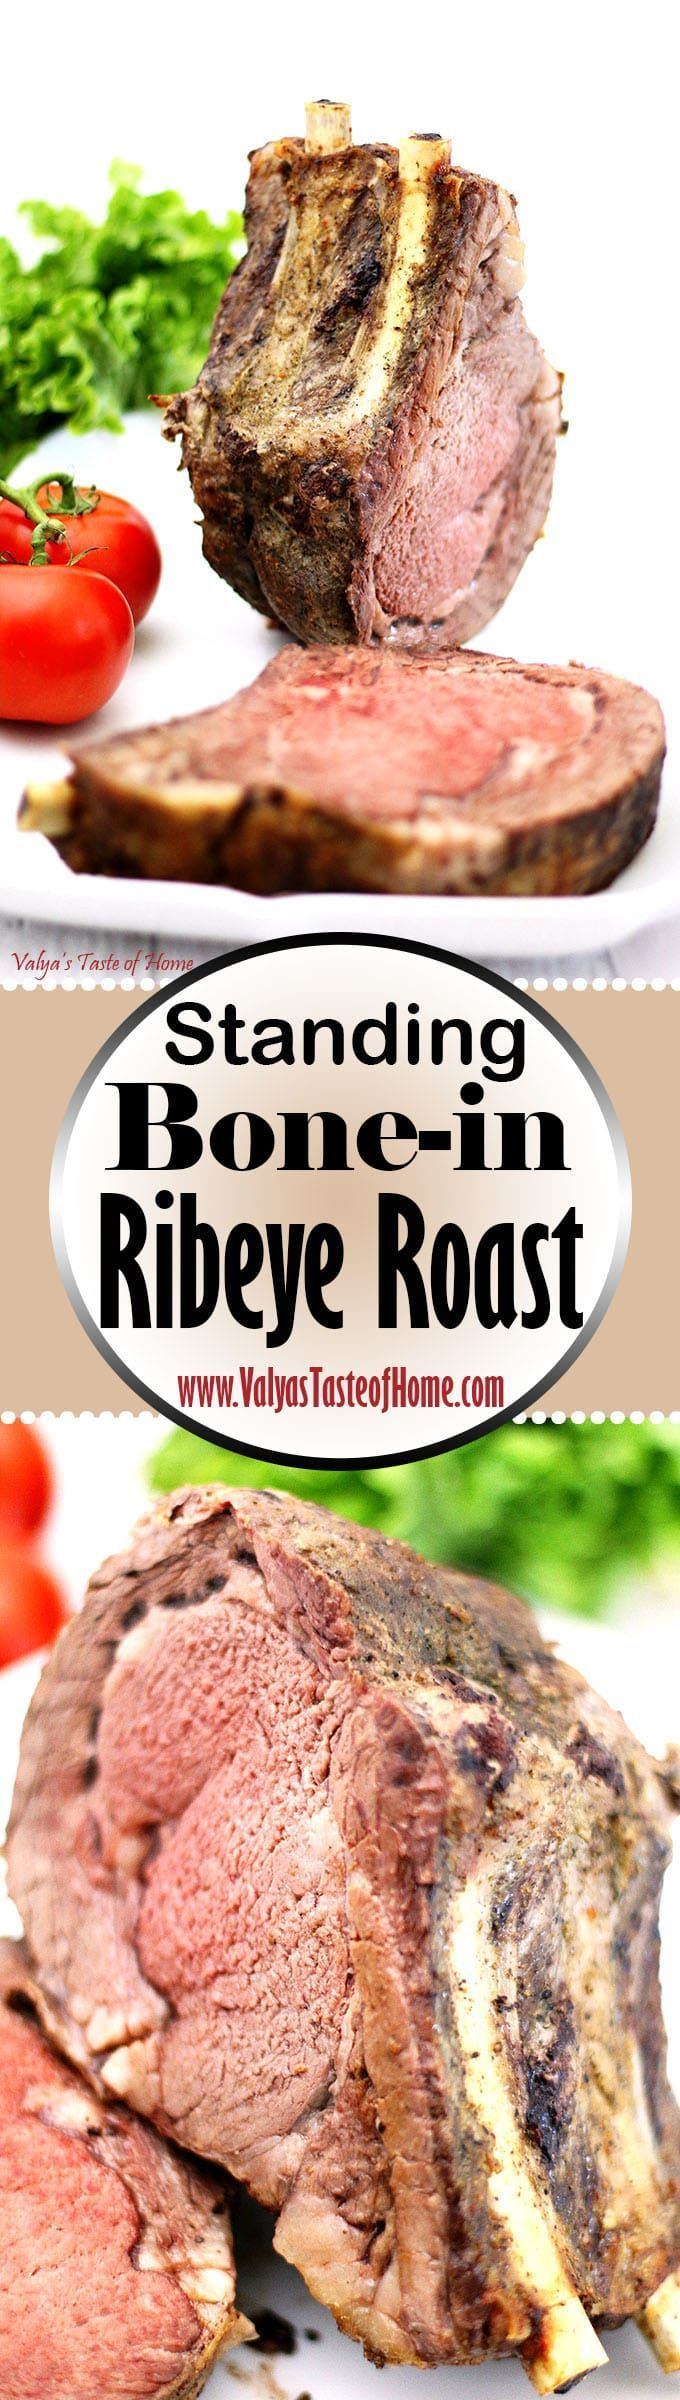 This Standing Bone-in Ribeye Roast Recipe is the most amazingly juicy, super soft and delicious pieces of meat in the steak family you can enjoy. And hey, if you want to splurge a little during a non-holiday season and enjoy a fantastic meal with your family, why not? So, if you need a perfect bone-in rib roast ultra-simple recipe, don't miss out on this one. Enjoy! |www.valyastasteofhome.com